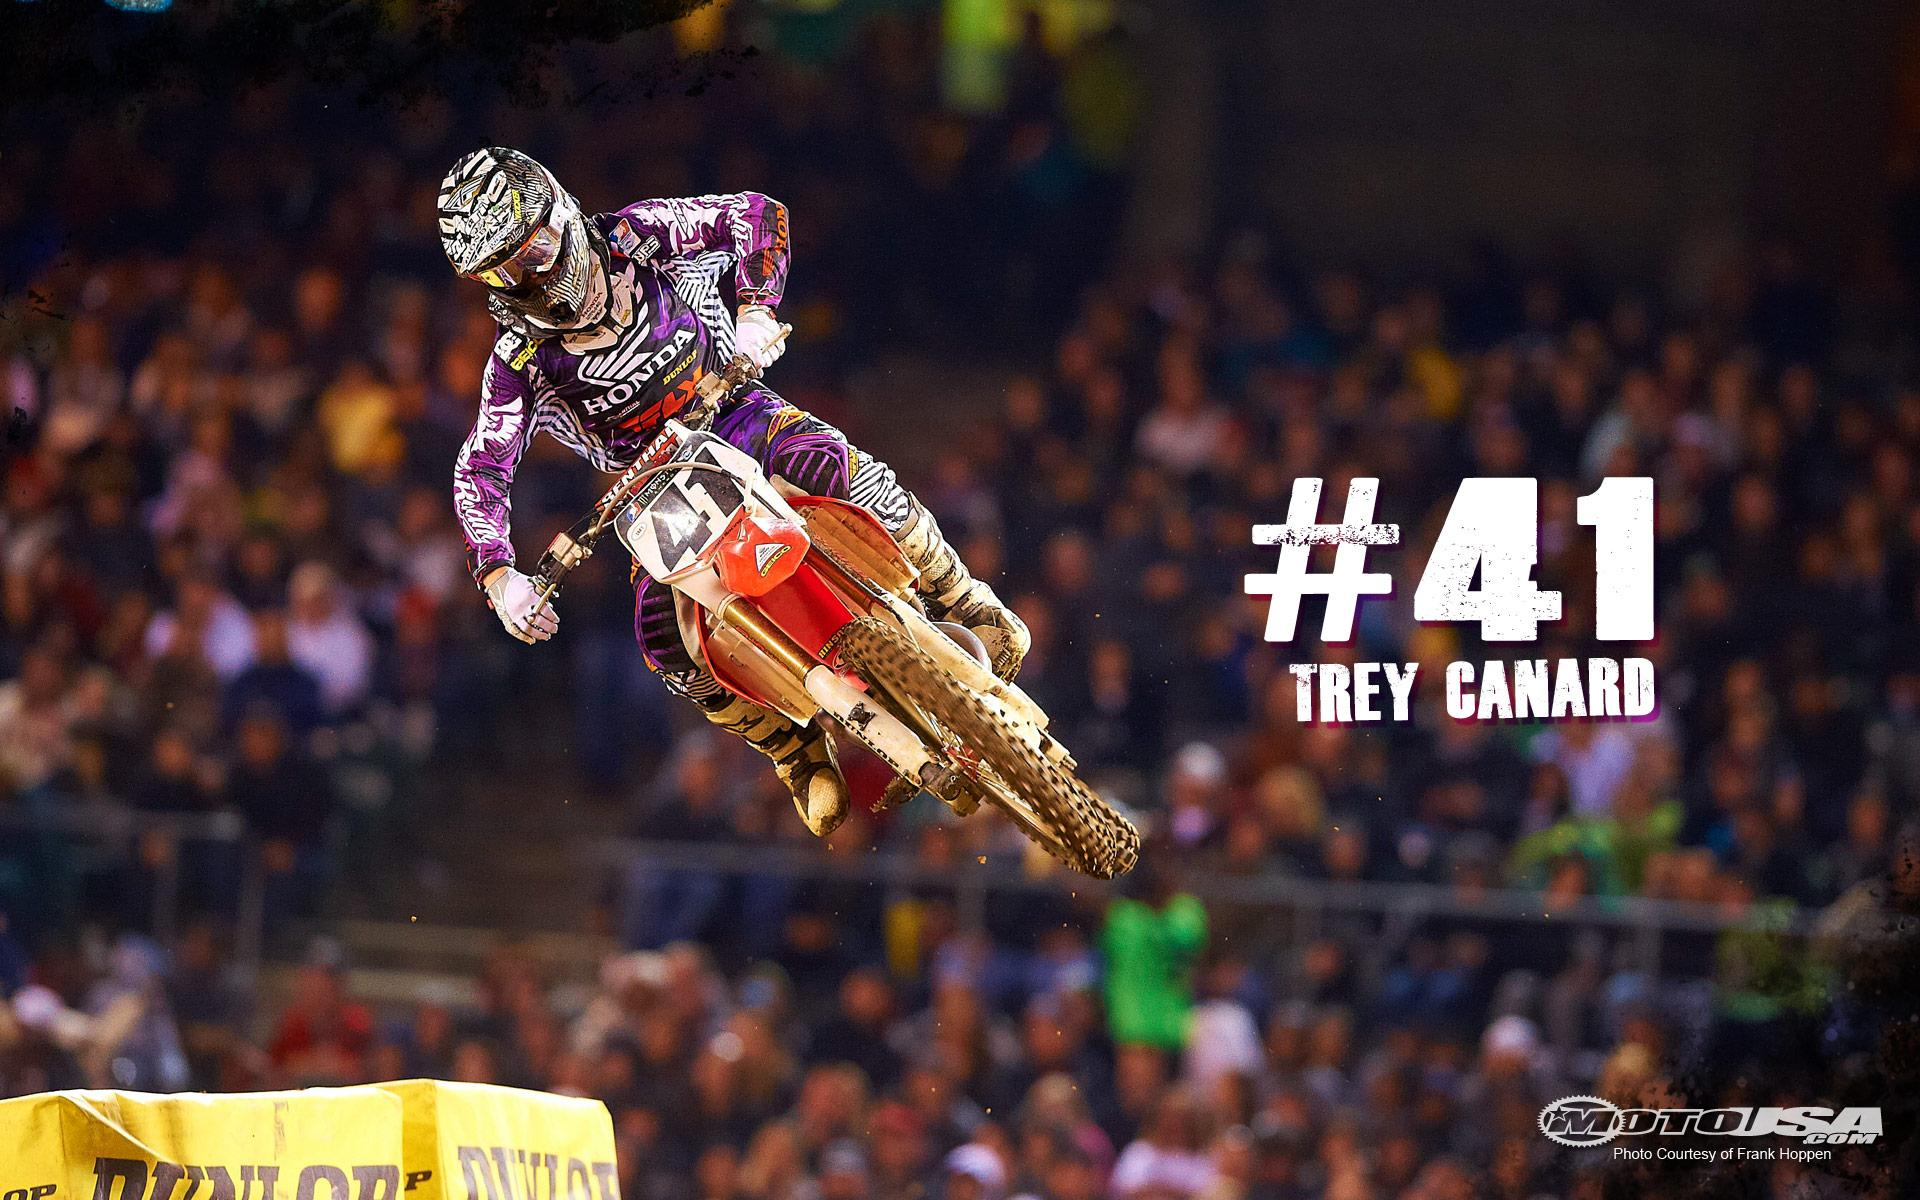 Ama Supercross 2011 Wallpaper Images Crazy Gallery 1920x1200